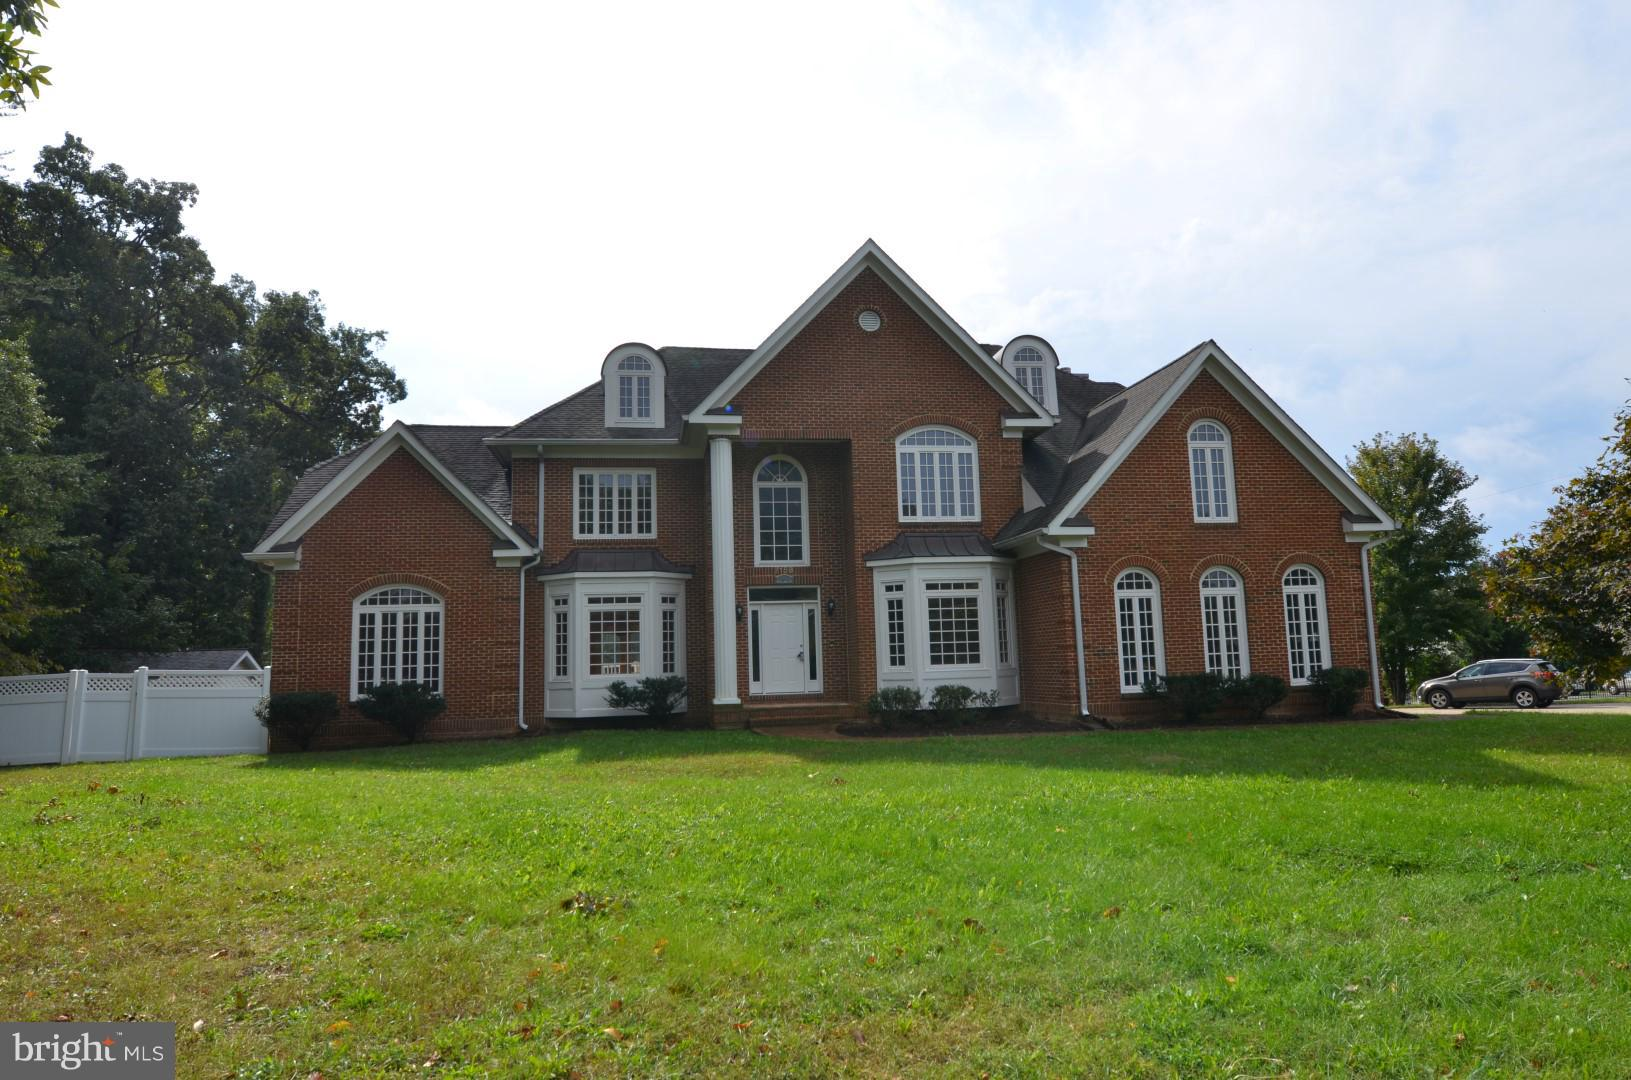 Beautiful all brick single family home with no HOA! Home is close to major commuter routes, the belt way & one mile to 495, 395 & 95. Home has beautiful hardwood floors, marble floors in the gourmet kitchen, w/cooktop, island, & breakfast bar. Huge family rm, w/floor to ceiling stone fireplace, formal living rm w/fireplace, & separate dining rm. Finished walk-out lower level w/rec rm & bar area.